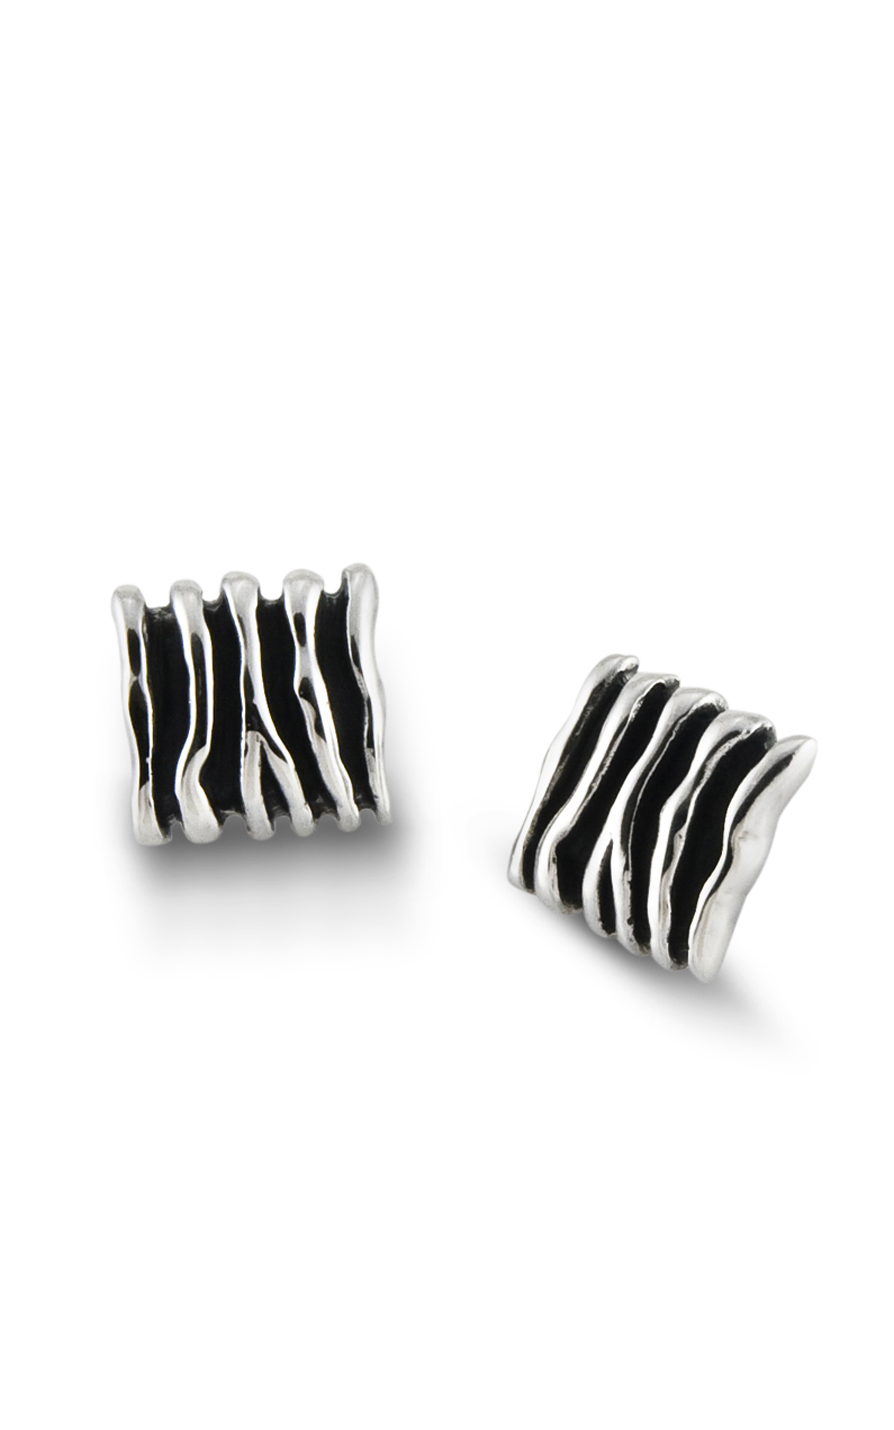 Zina Waves and Meditation Earrings B1380 product image